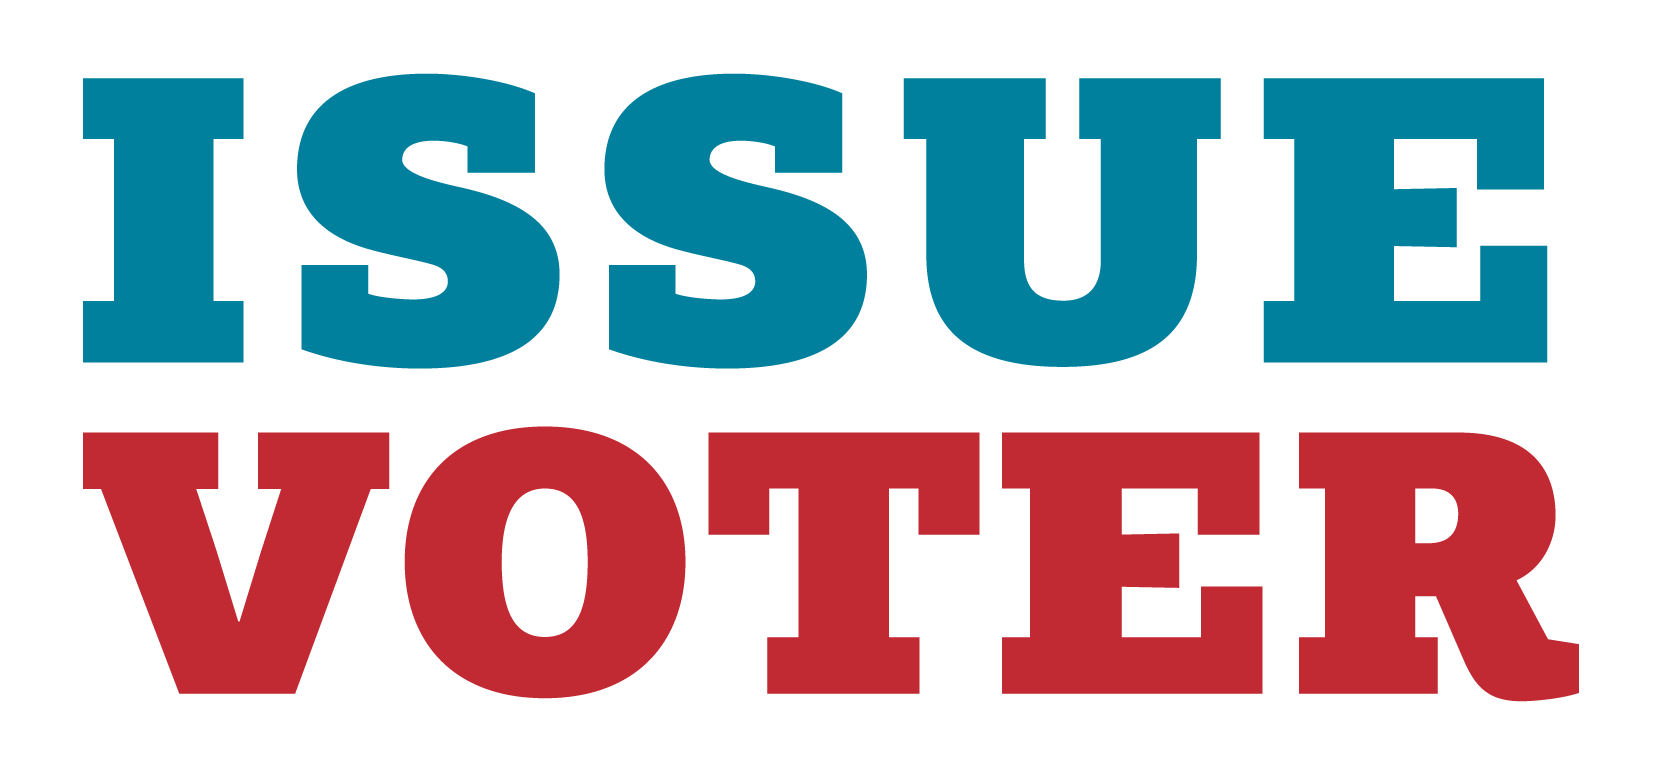 issue voter logo.png